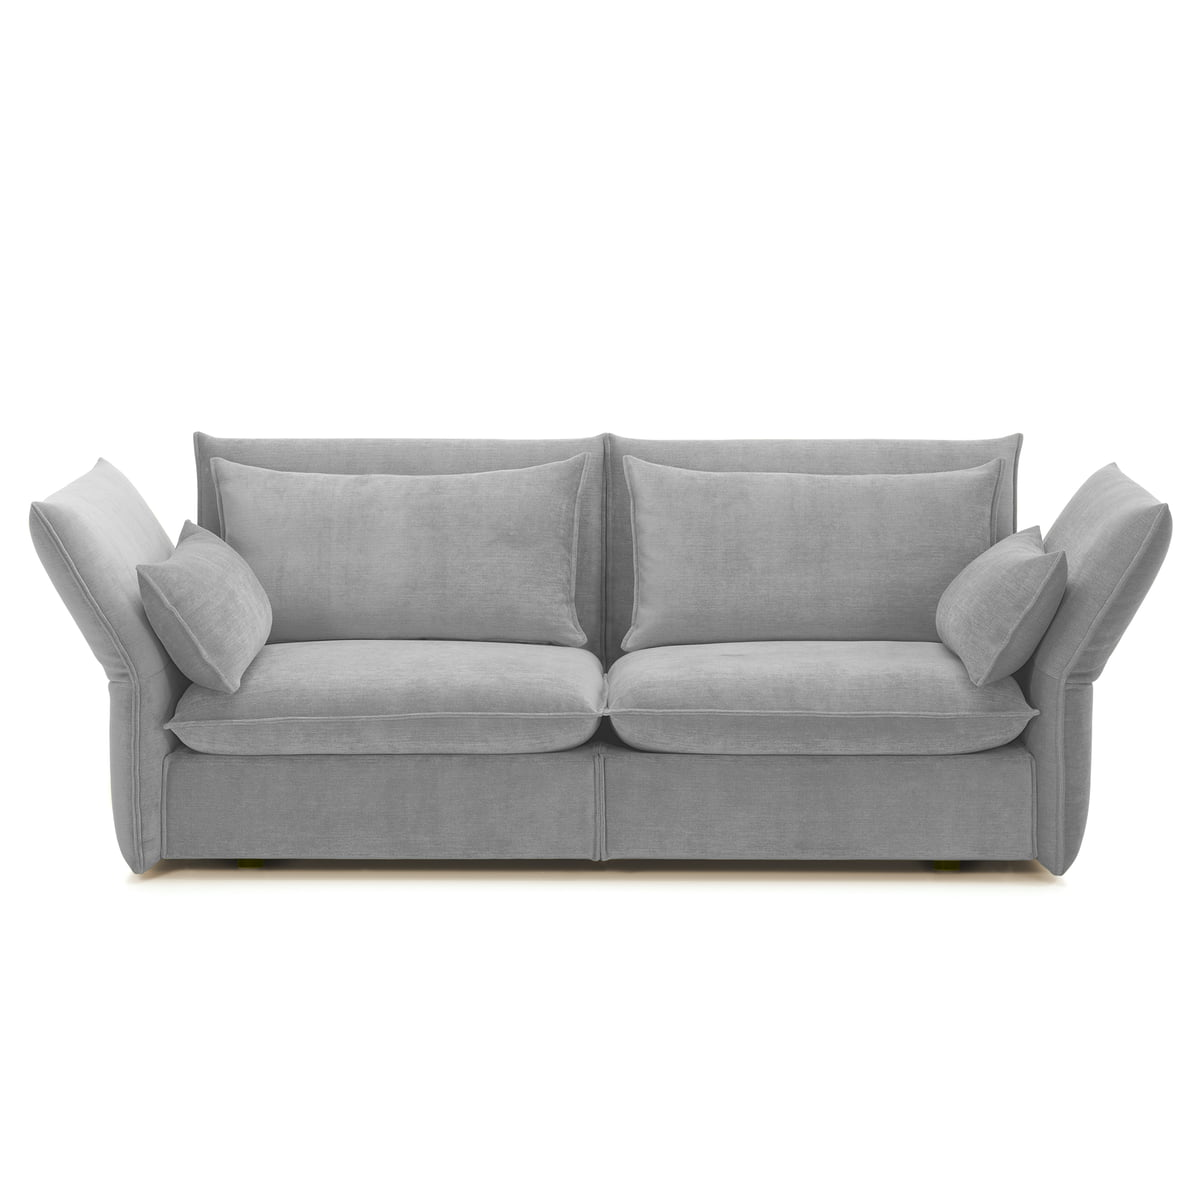 mariposa sofa von vitra im wohndesign shop. Black Bedroom Furniture Sets. Home Design Ideas